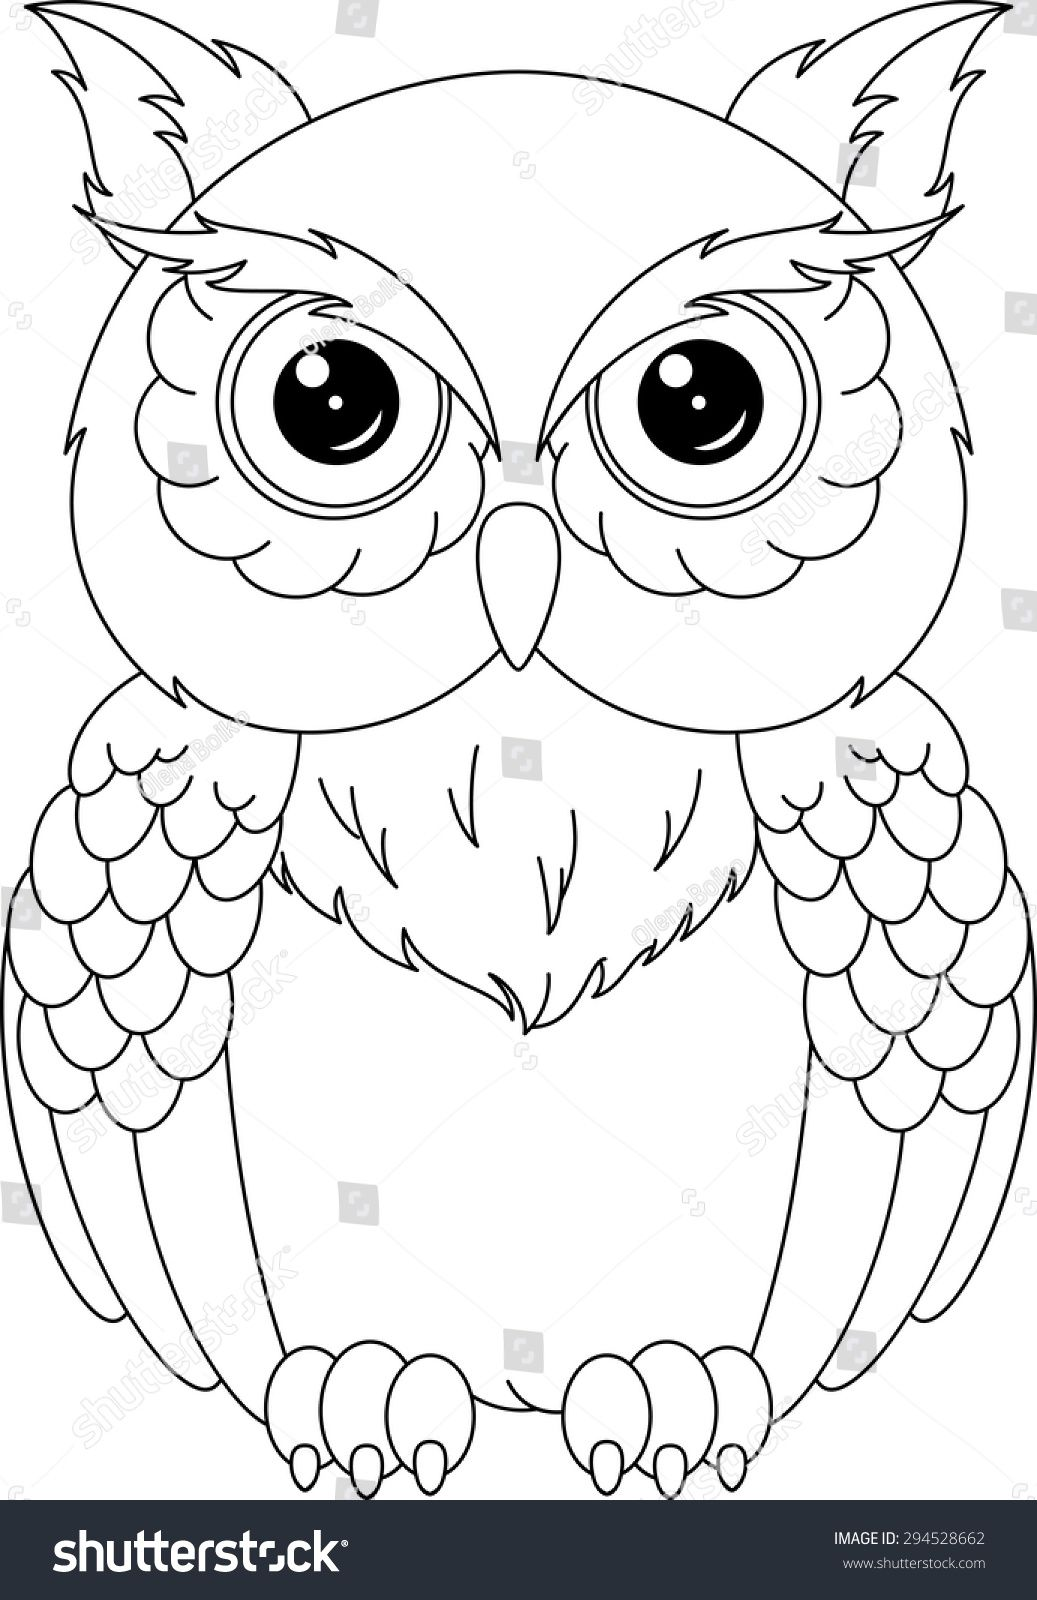 Pin by Tina on Patterns  Owl coloring pages, Owls drawing, Owl